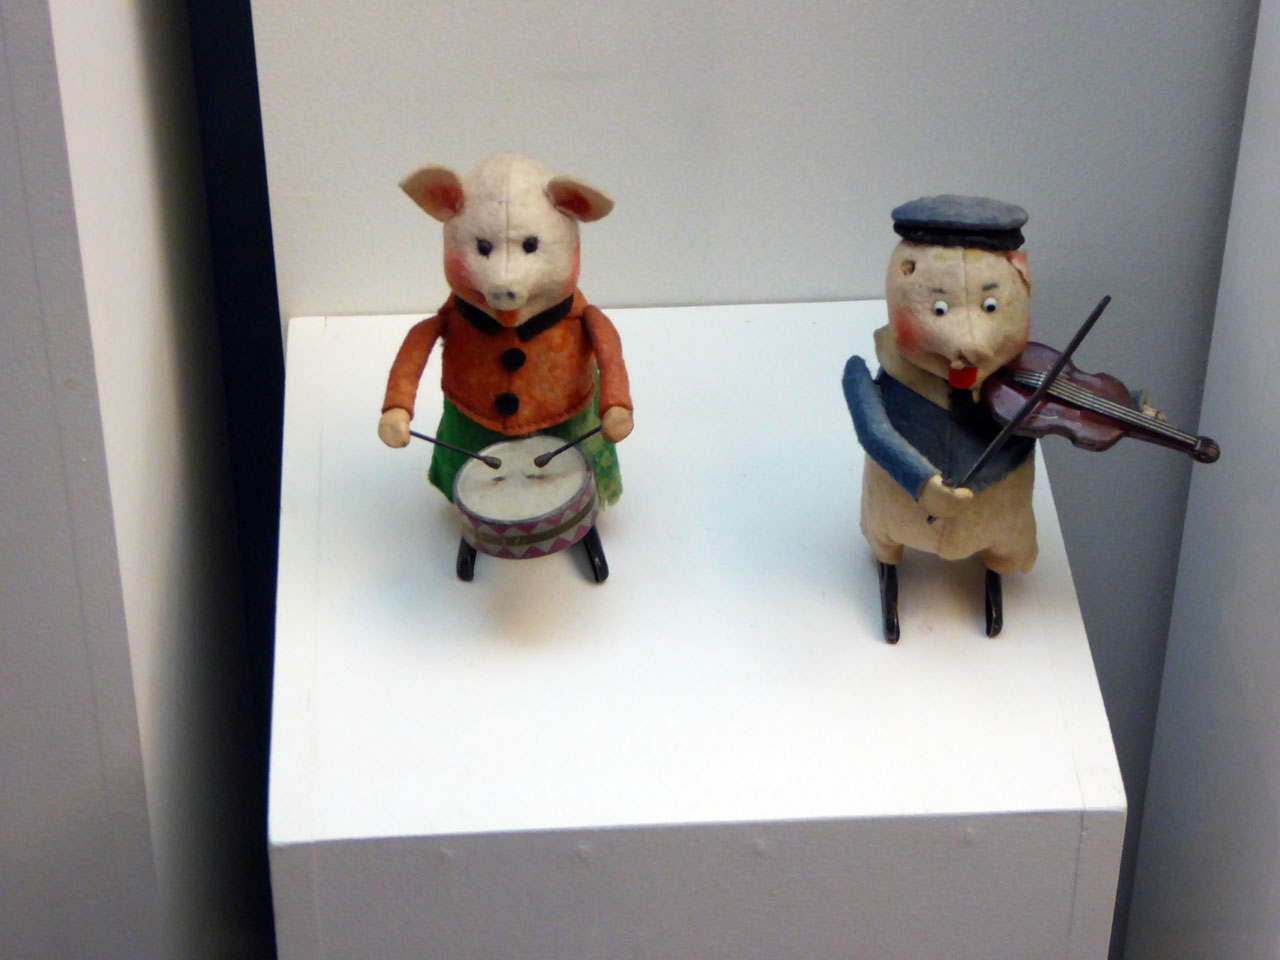 Belgian children's toys in the Huis van Alijn museum, Ghent